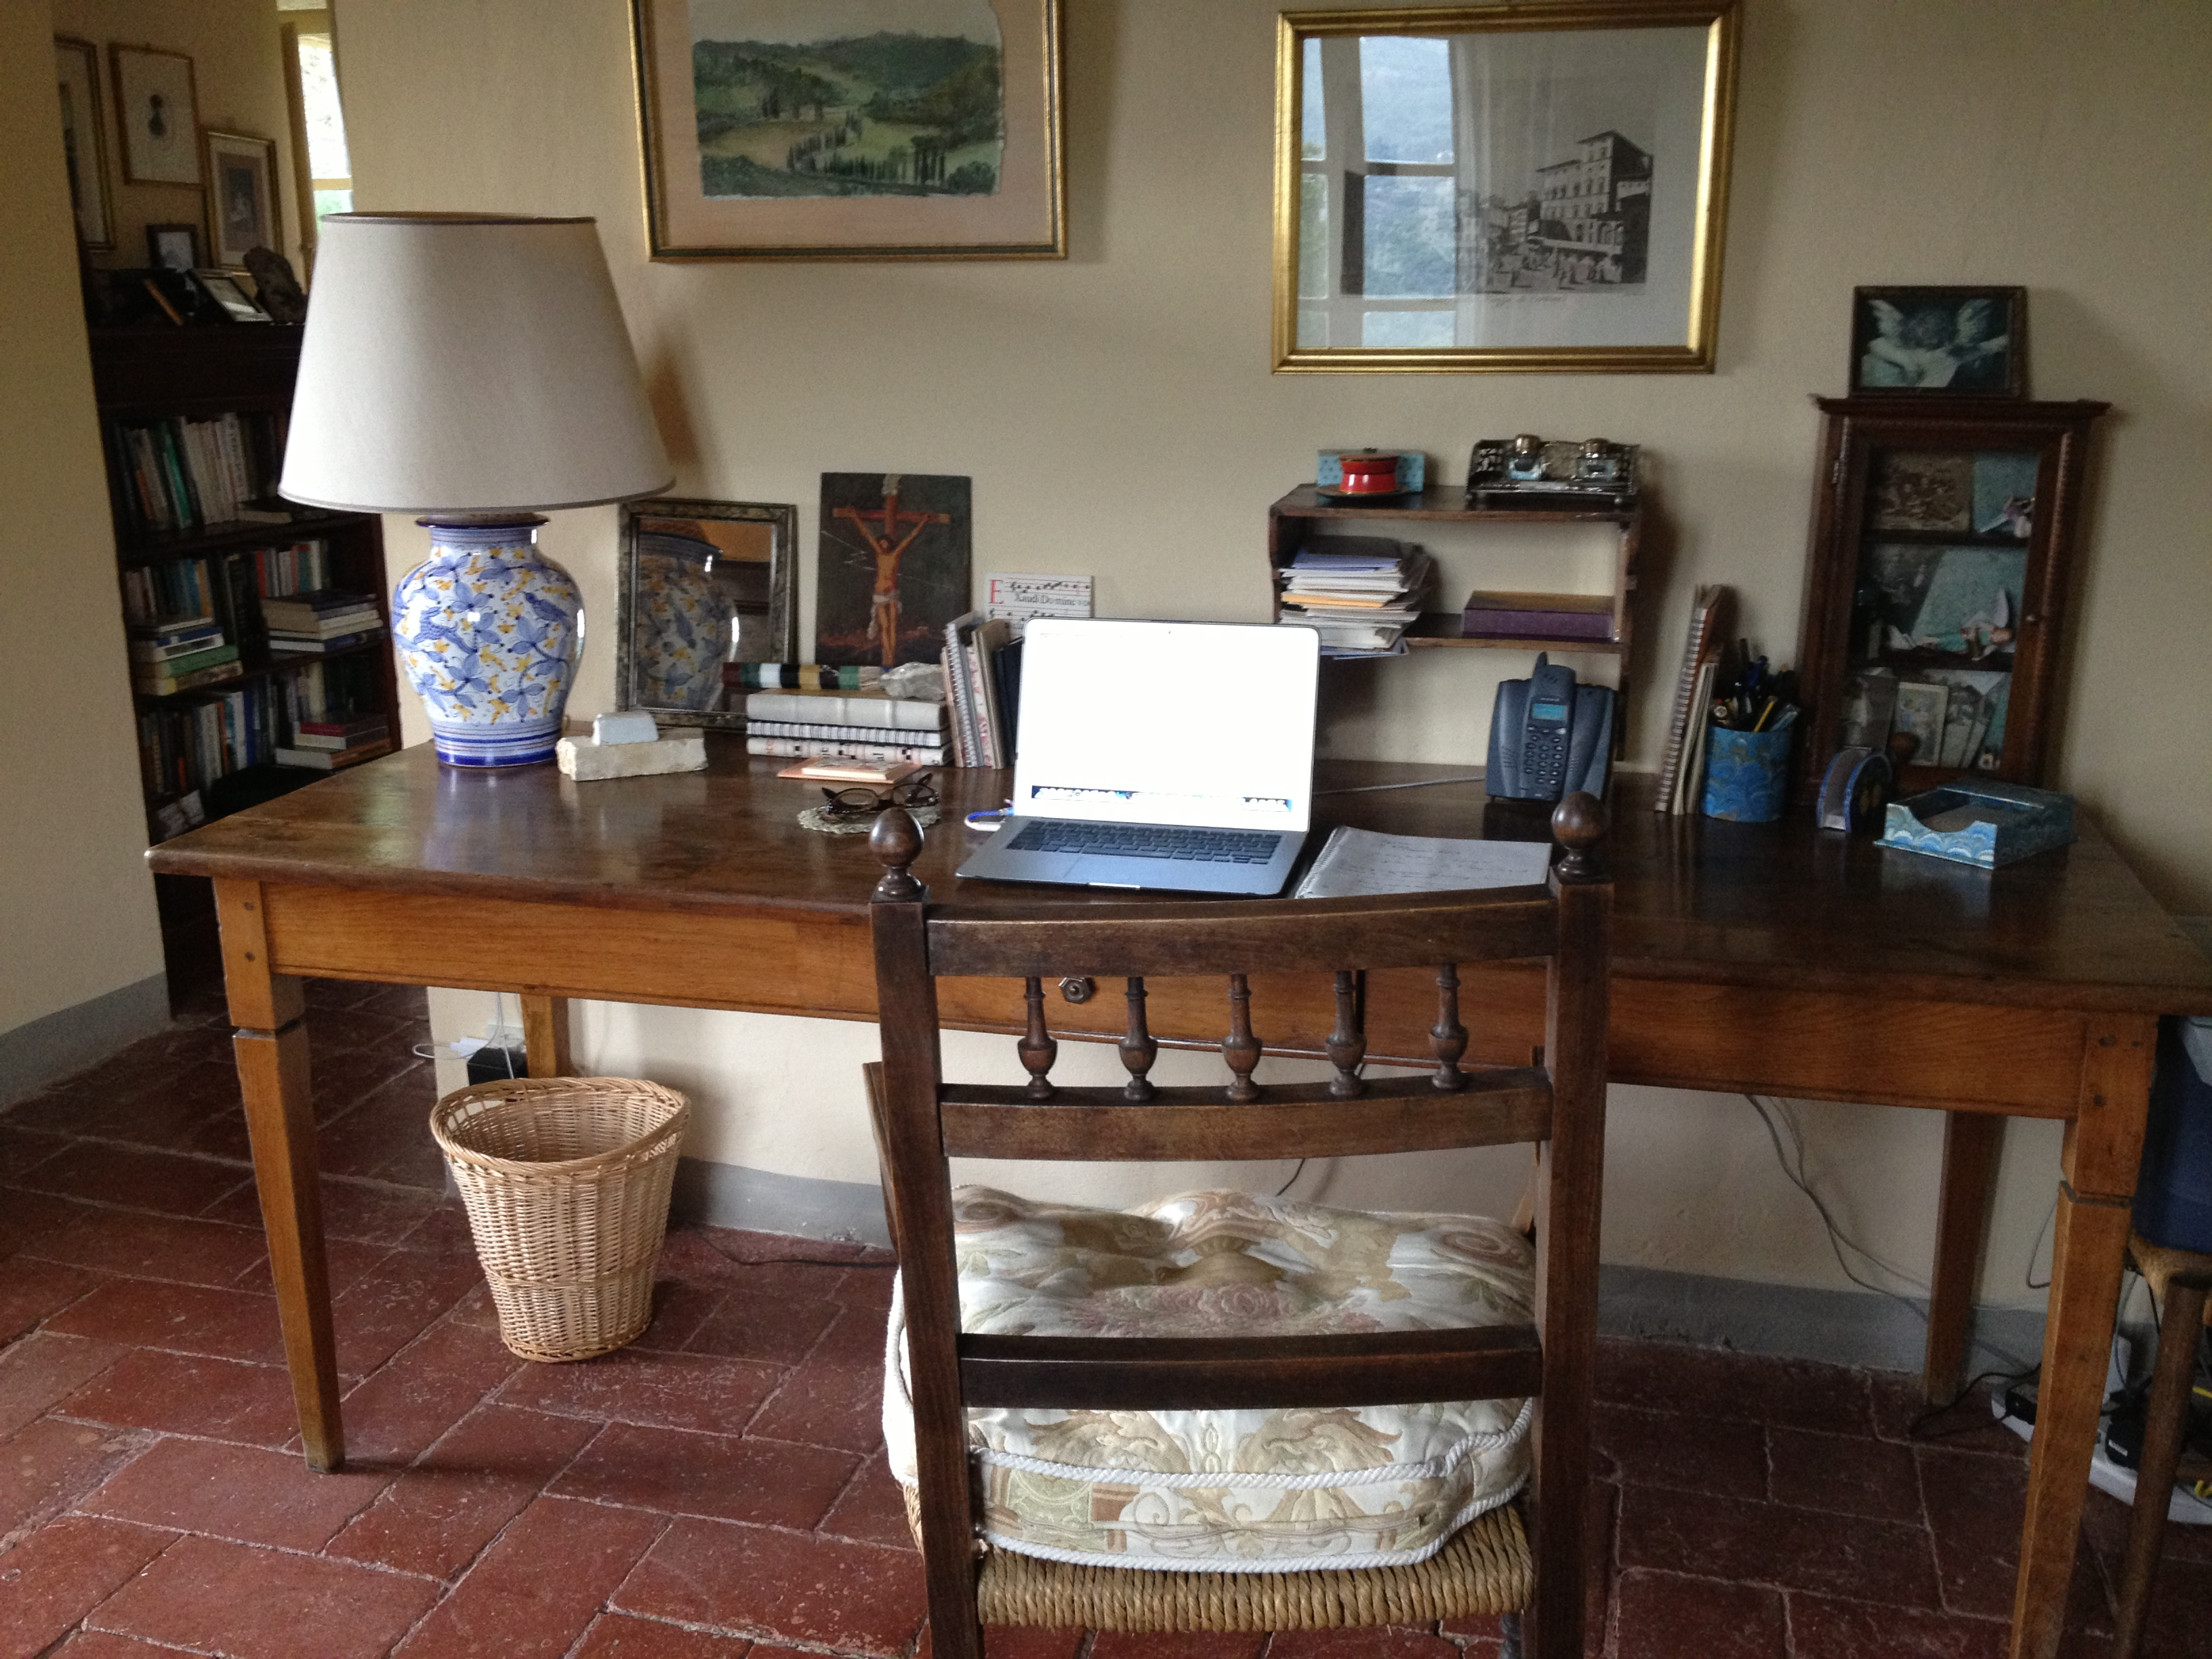 Frances mayes 39 s blog books at bramasole october 17 for The tuscan home blog